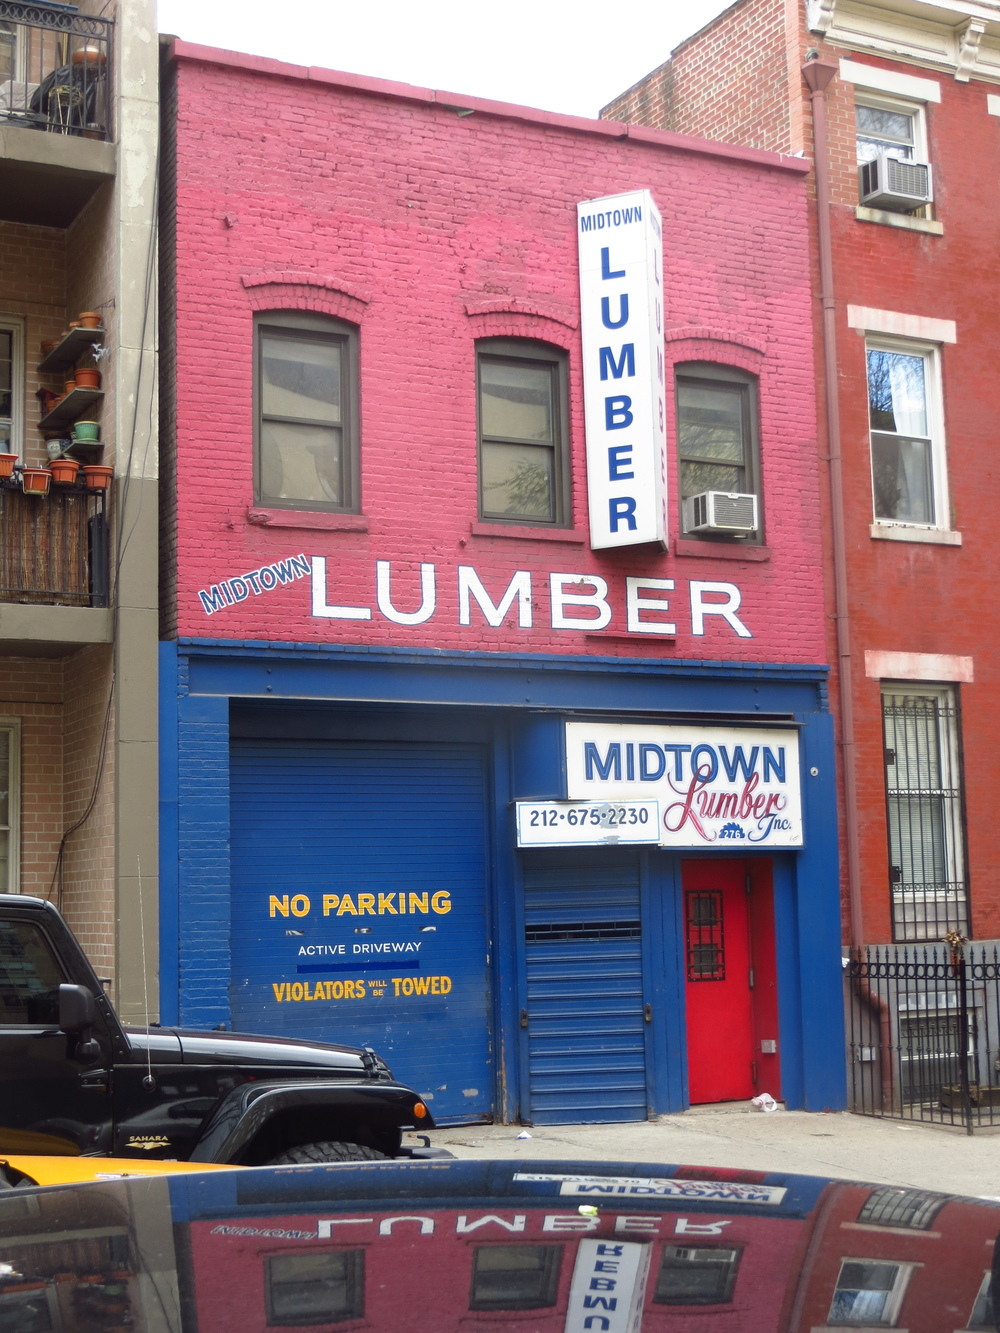 For all your Midtown lumber needs